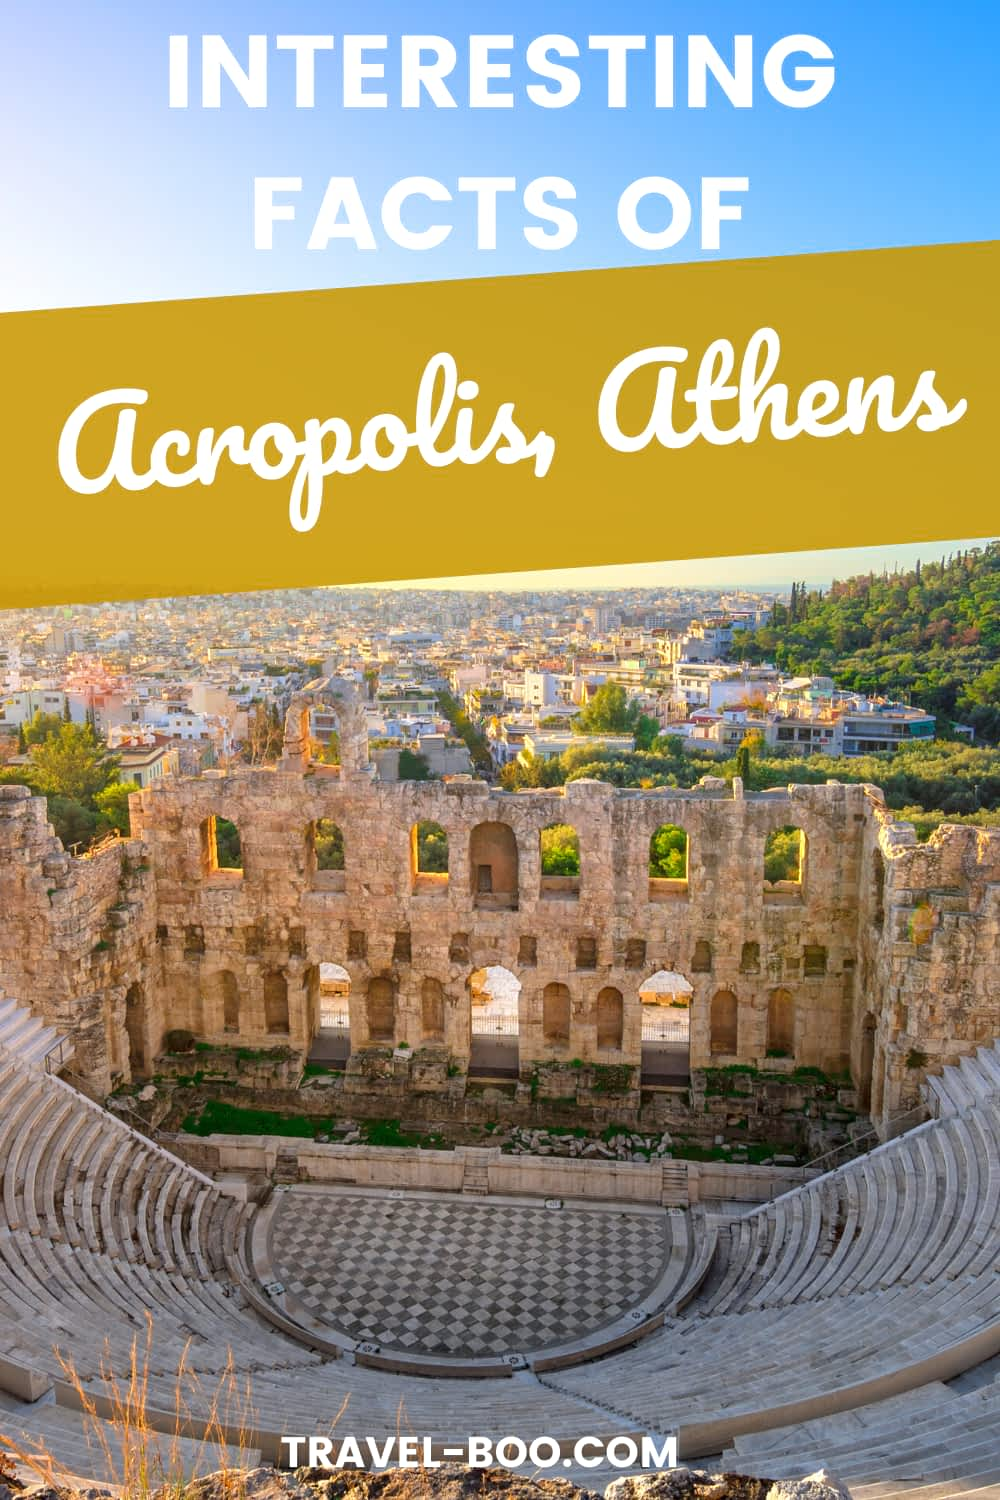 Visiting Athens? It doesn't get more inconic than the Acropolis in Athens. Read this post outlining 9 interesting facts of the Acropolis. Athens Travel, Athens Travel Guide, Athens Travel Tips, Athens Travel Things to do, Athens, Greece Travel Guide, Greece Travel, Greece Travel tips. #athenstravelguide #greecetravelguide #greecetravel #athenstravel